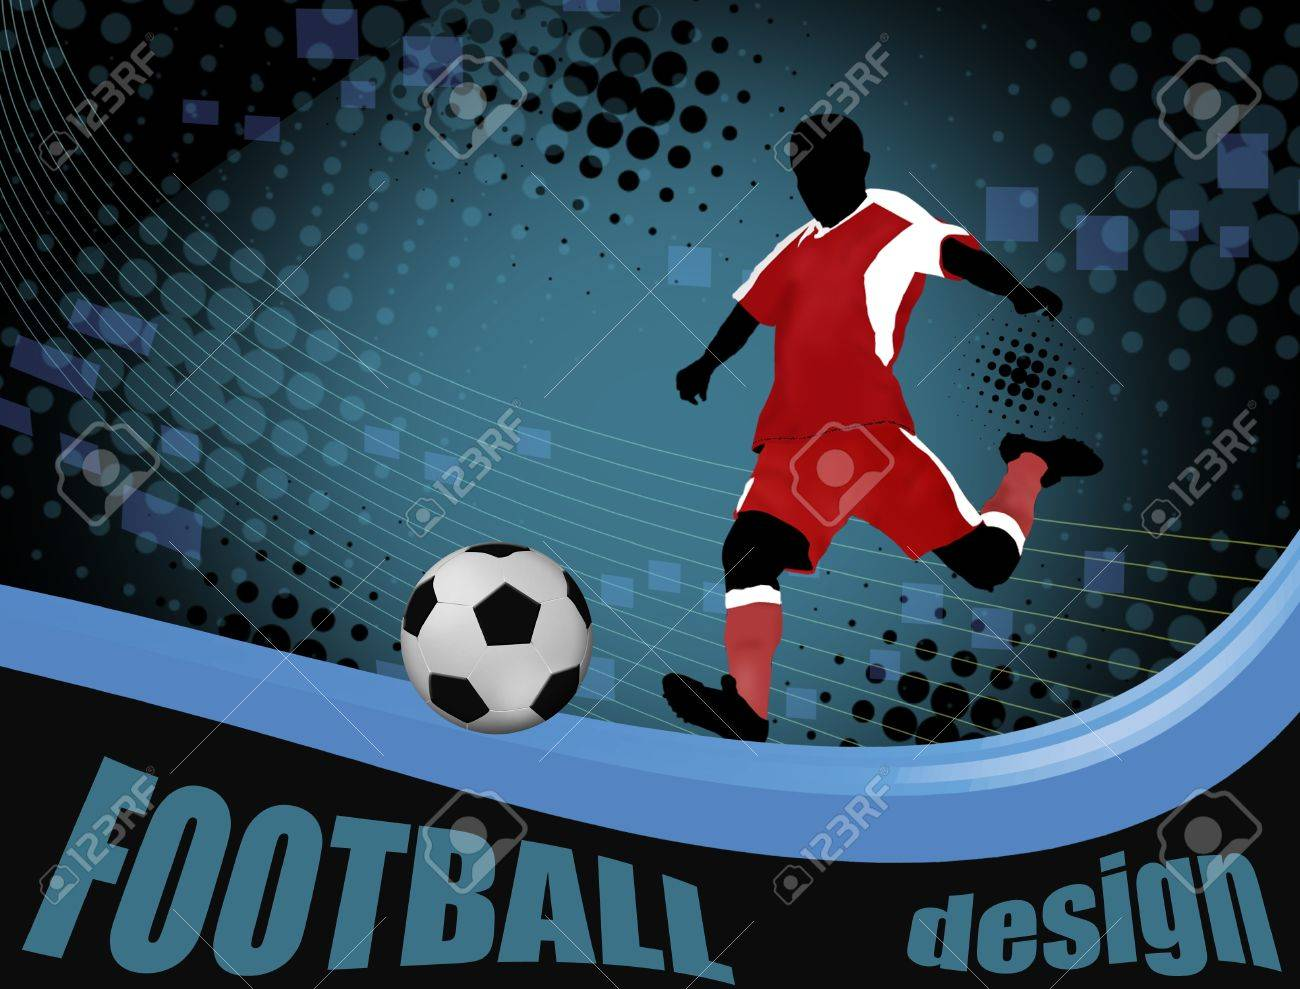 Football player with a soccer ball poster. Football design,  illustration Stock Vector - 11536179